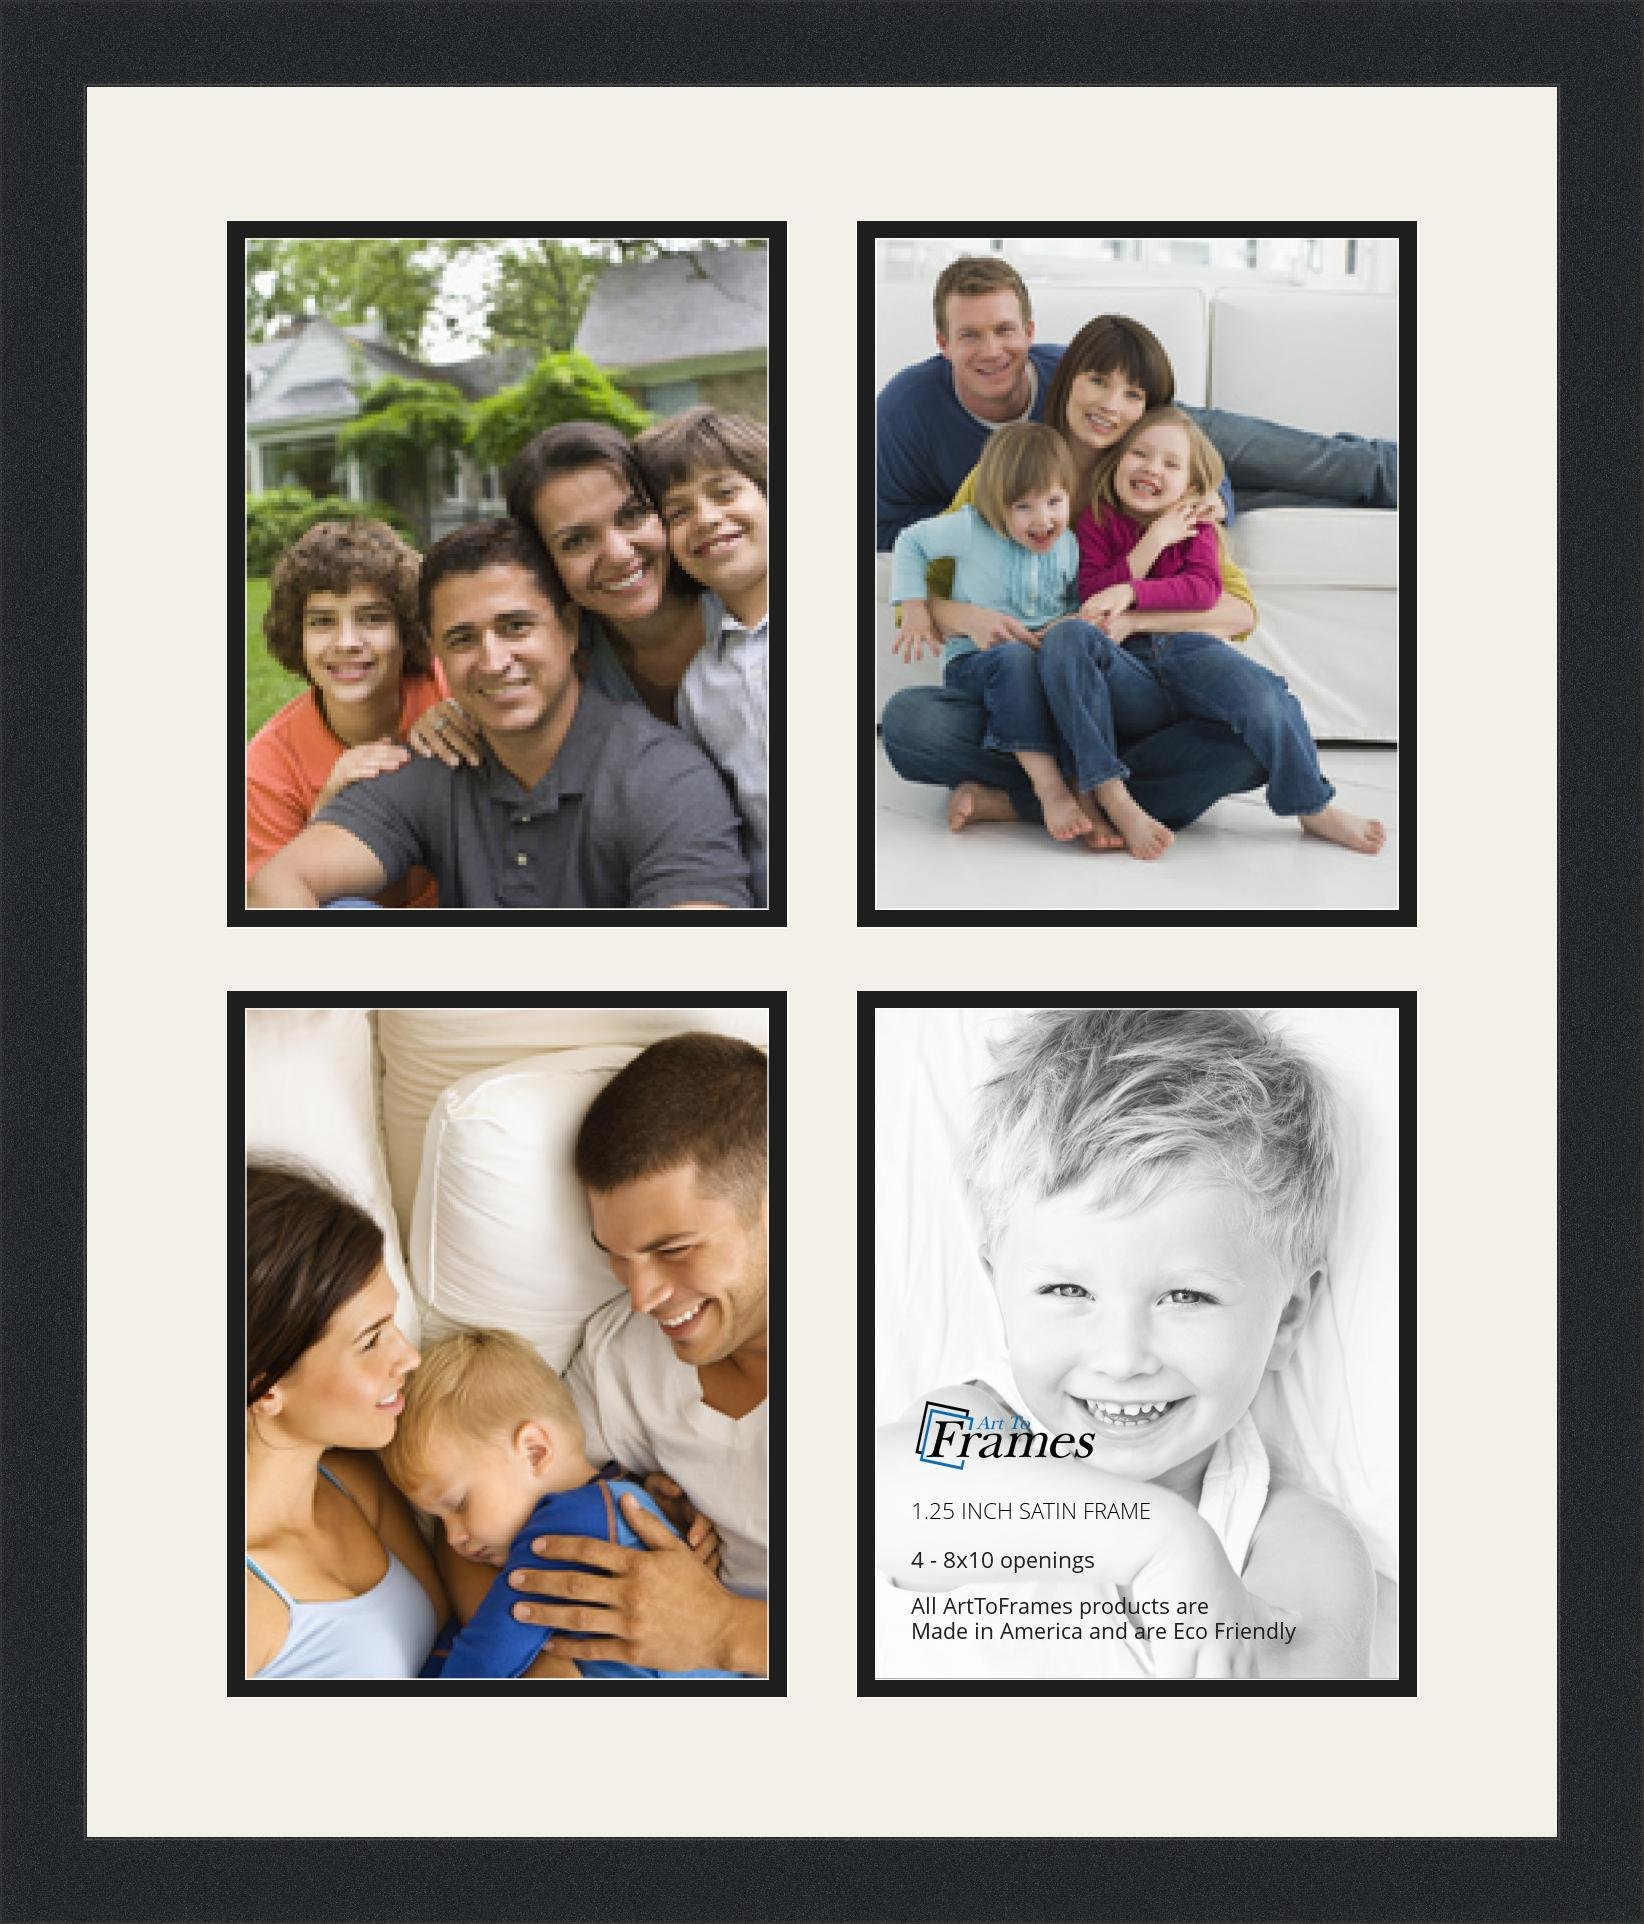 Cheap 4 8x10 Frame Collage Find 4 8x10 Frame Collage Deals On Line